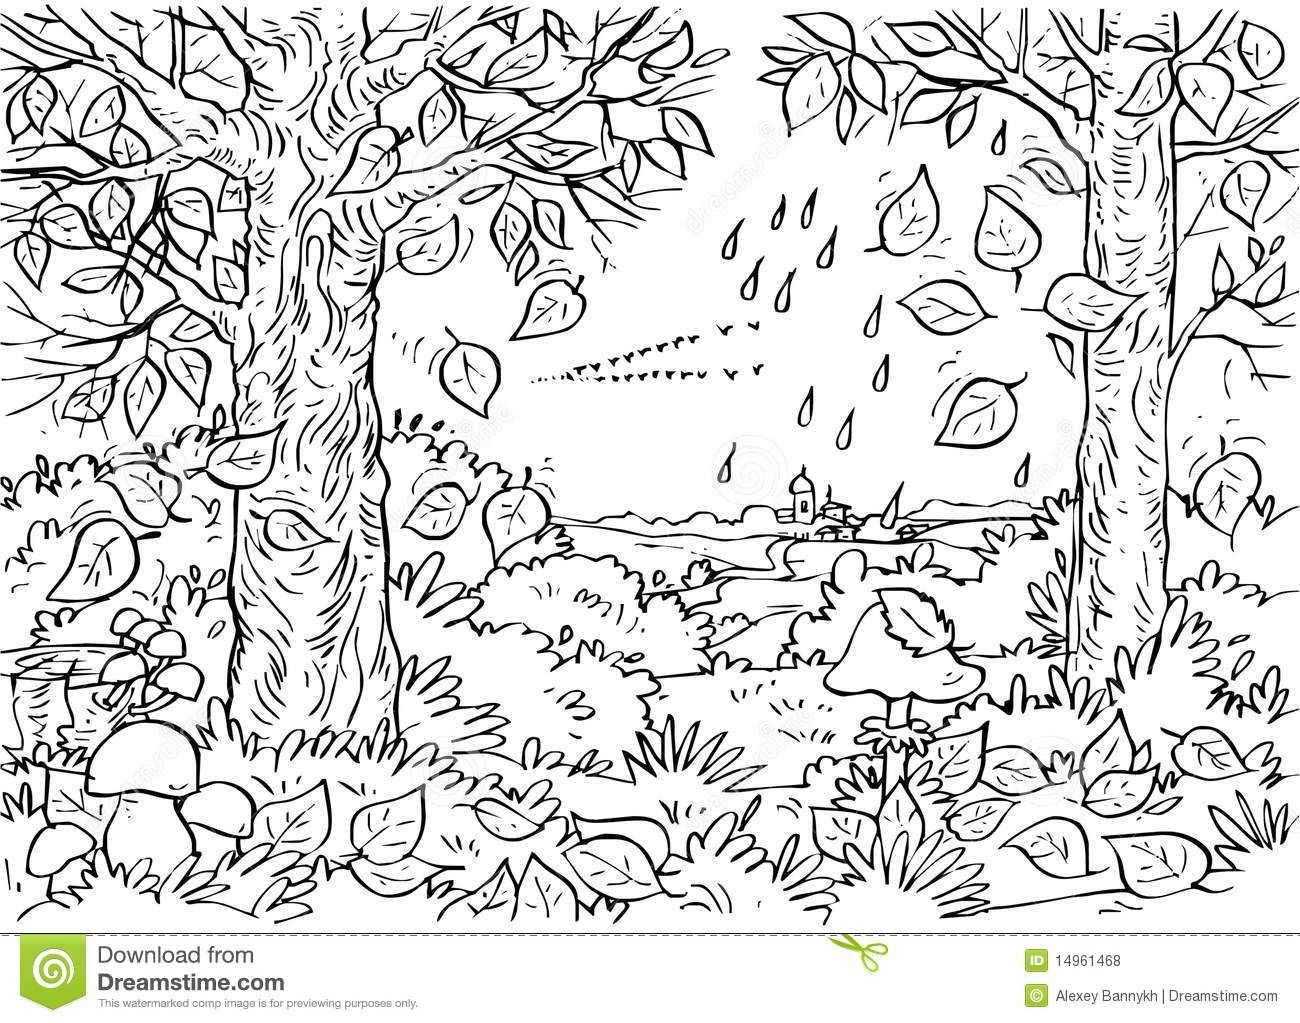 91875-deciduous-forest-coloring-pages.jpg (1300×1023